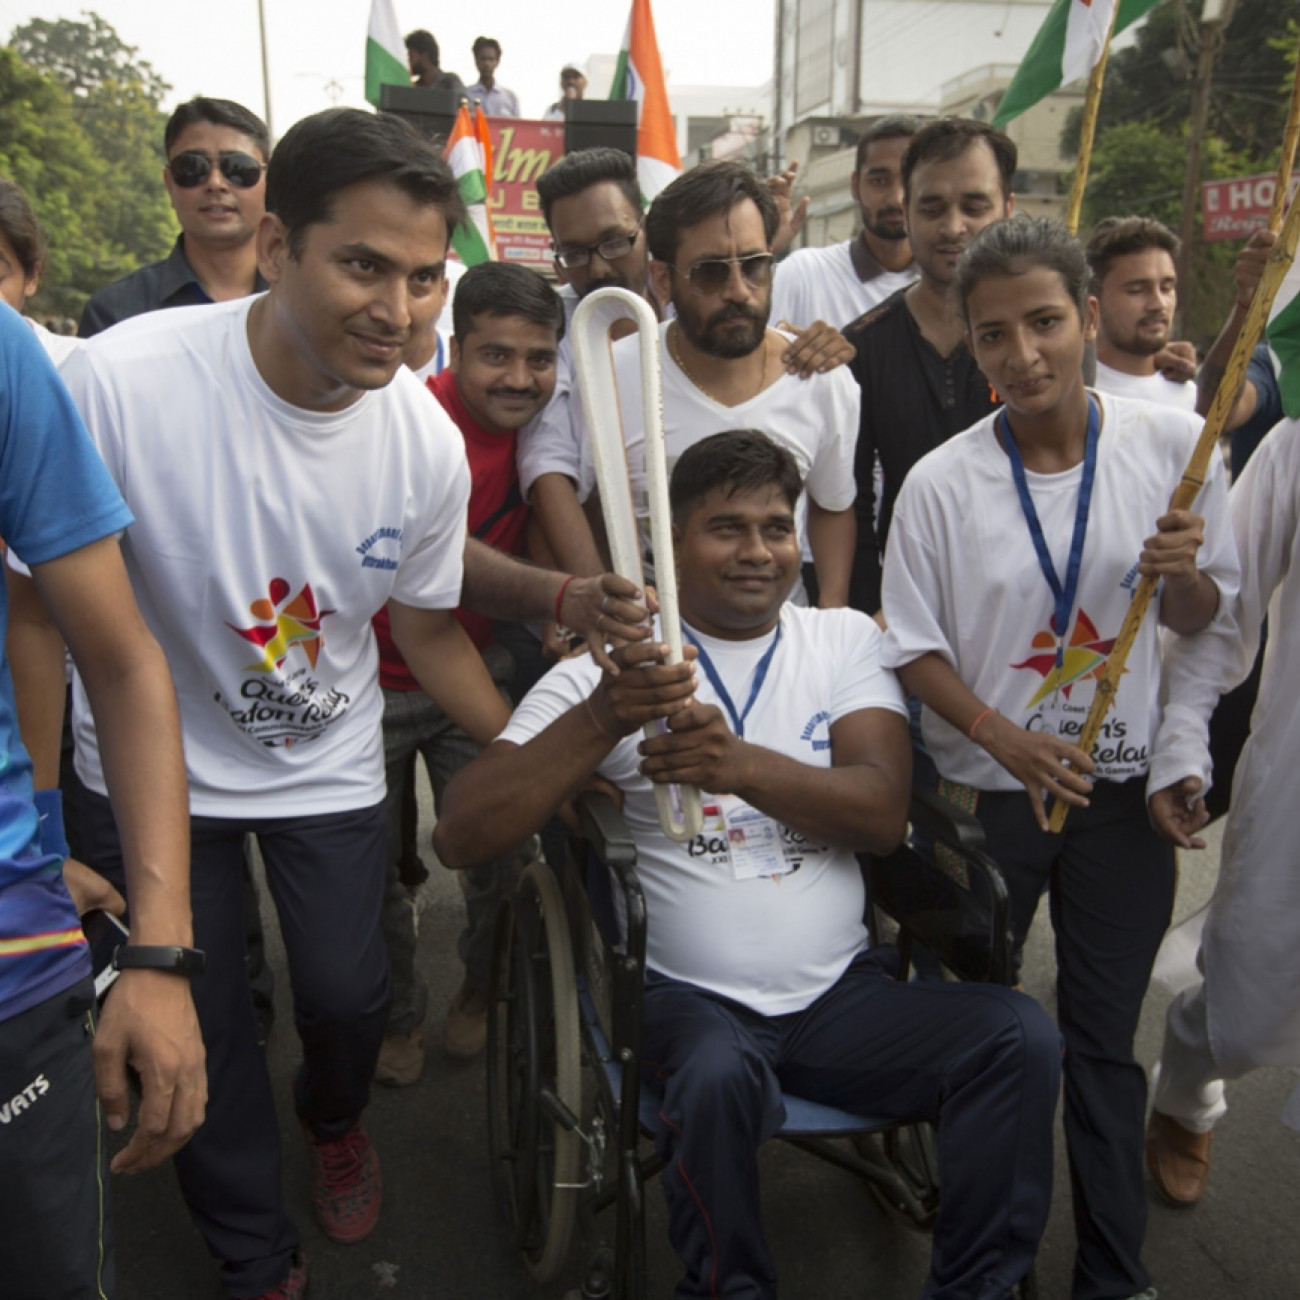 Batonbearers taking part in the Baton Relay through the streets of Haldwani